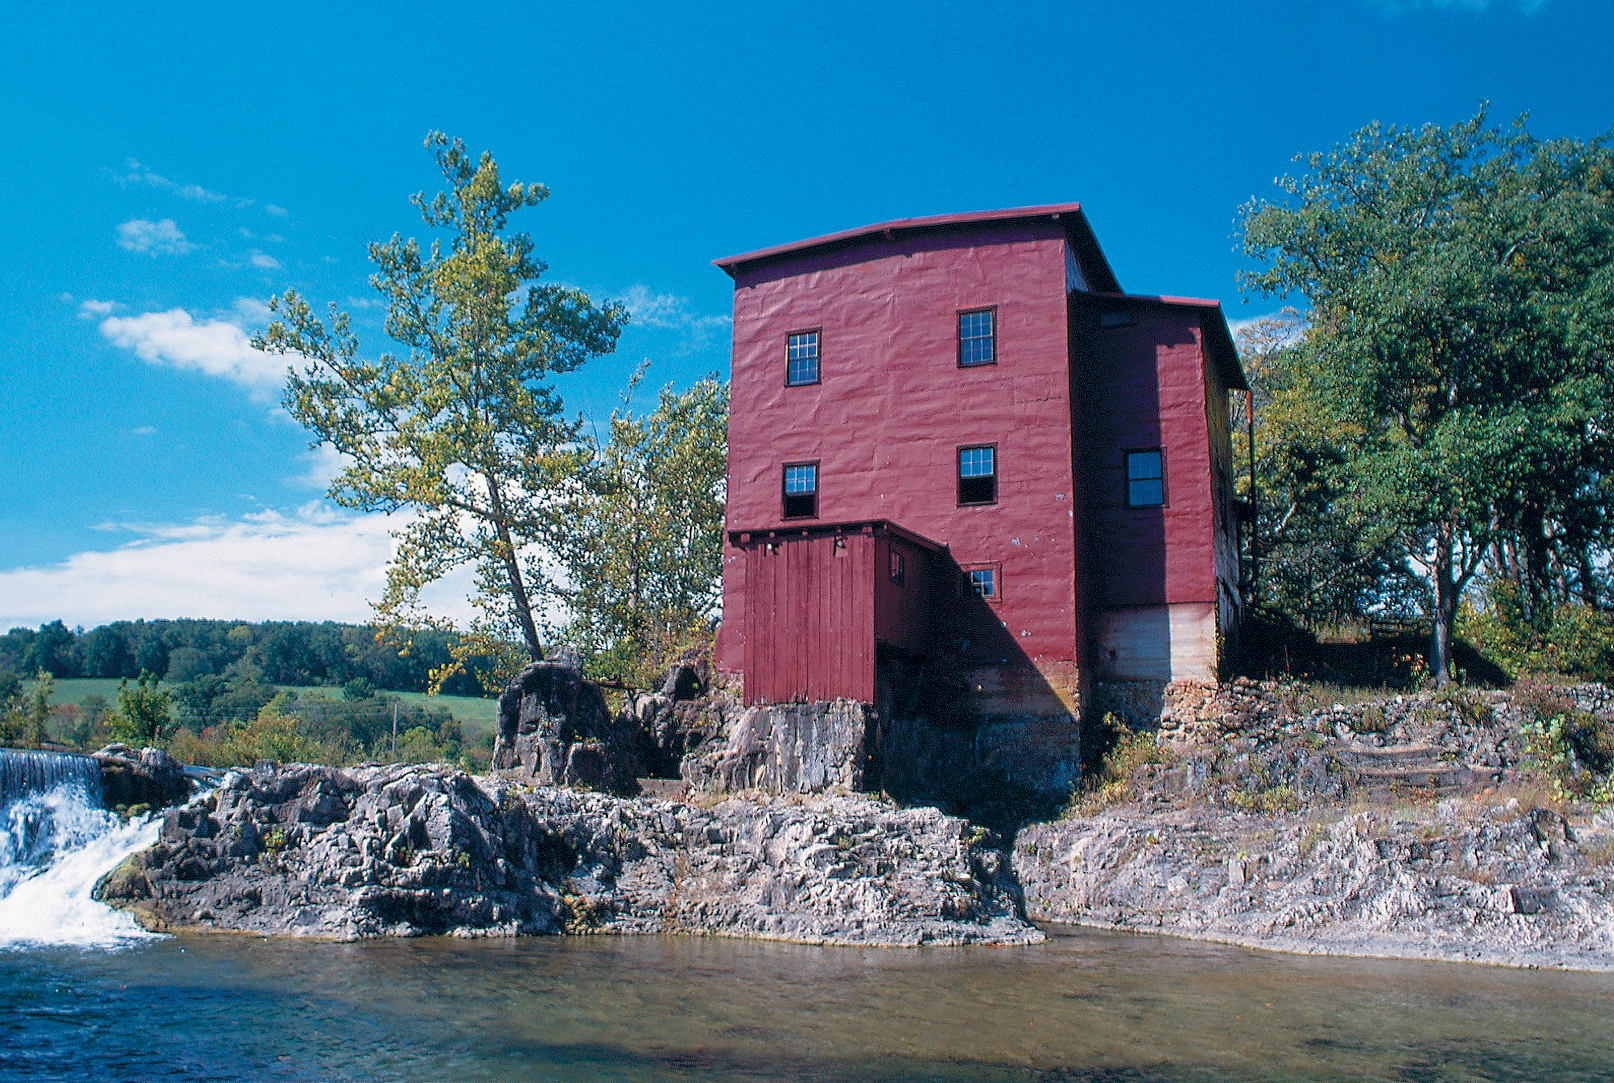 red mill with water cascading over a ledge next to it